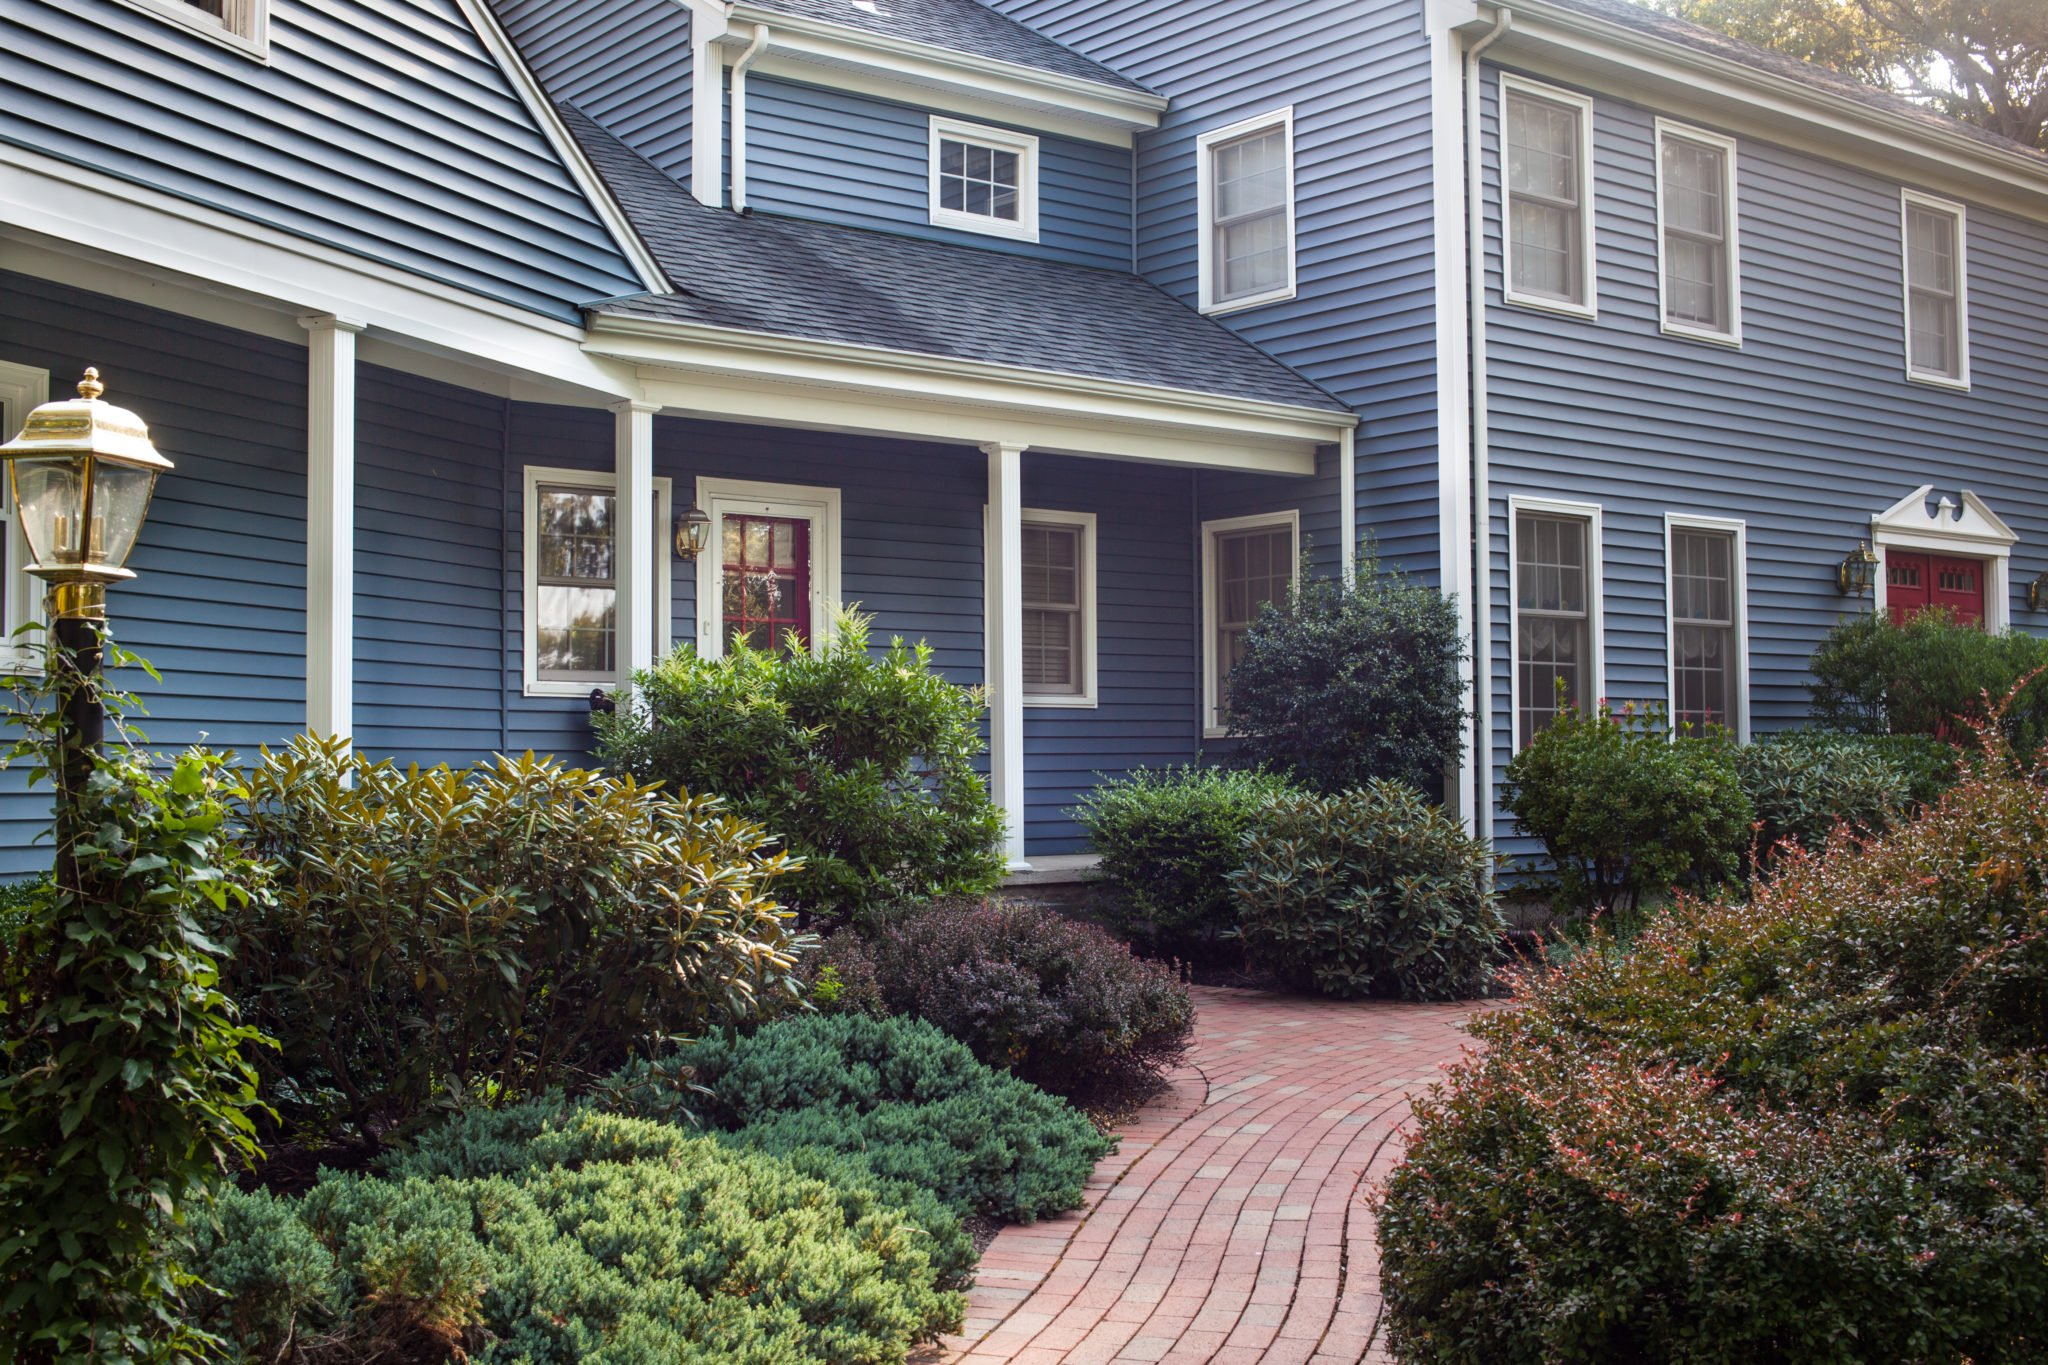 RI Renovated Colonial Home with Striking Blue Vinyl Siding by Roofers Marshall Building & Remodeling